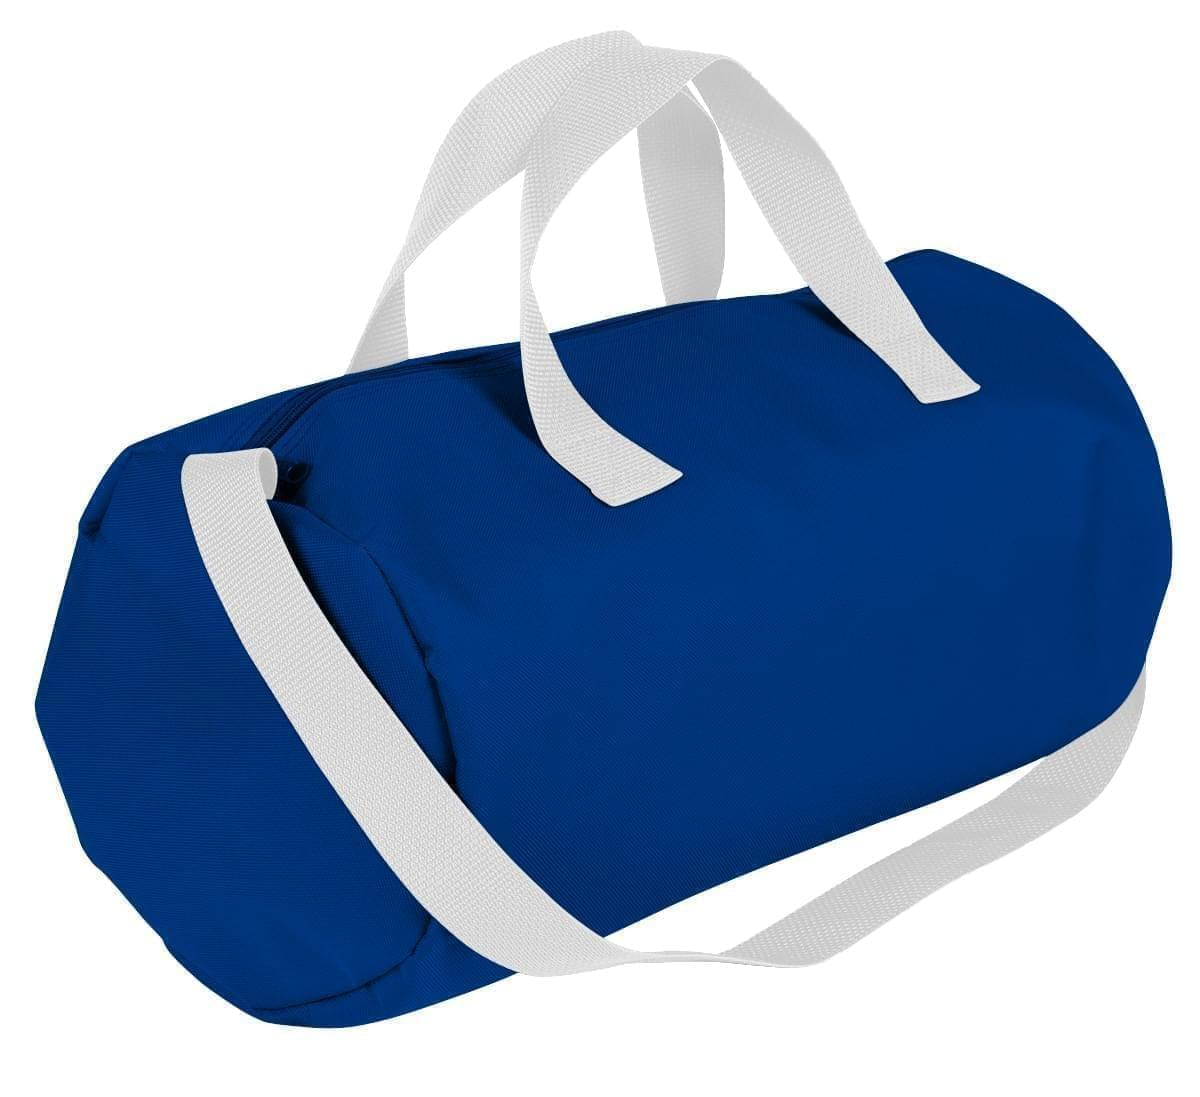 USA Made Nylon Poly Gym Roll Bags, Royal Blue-White, ROCX31AA04